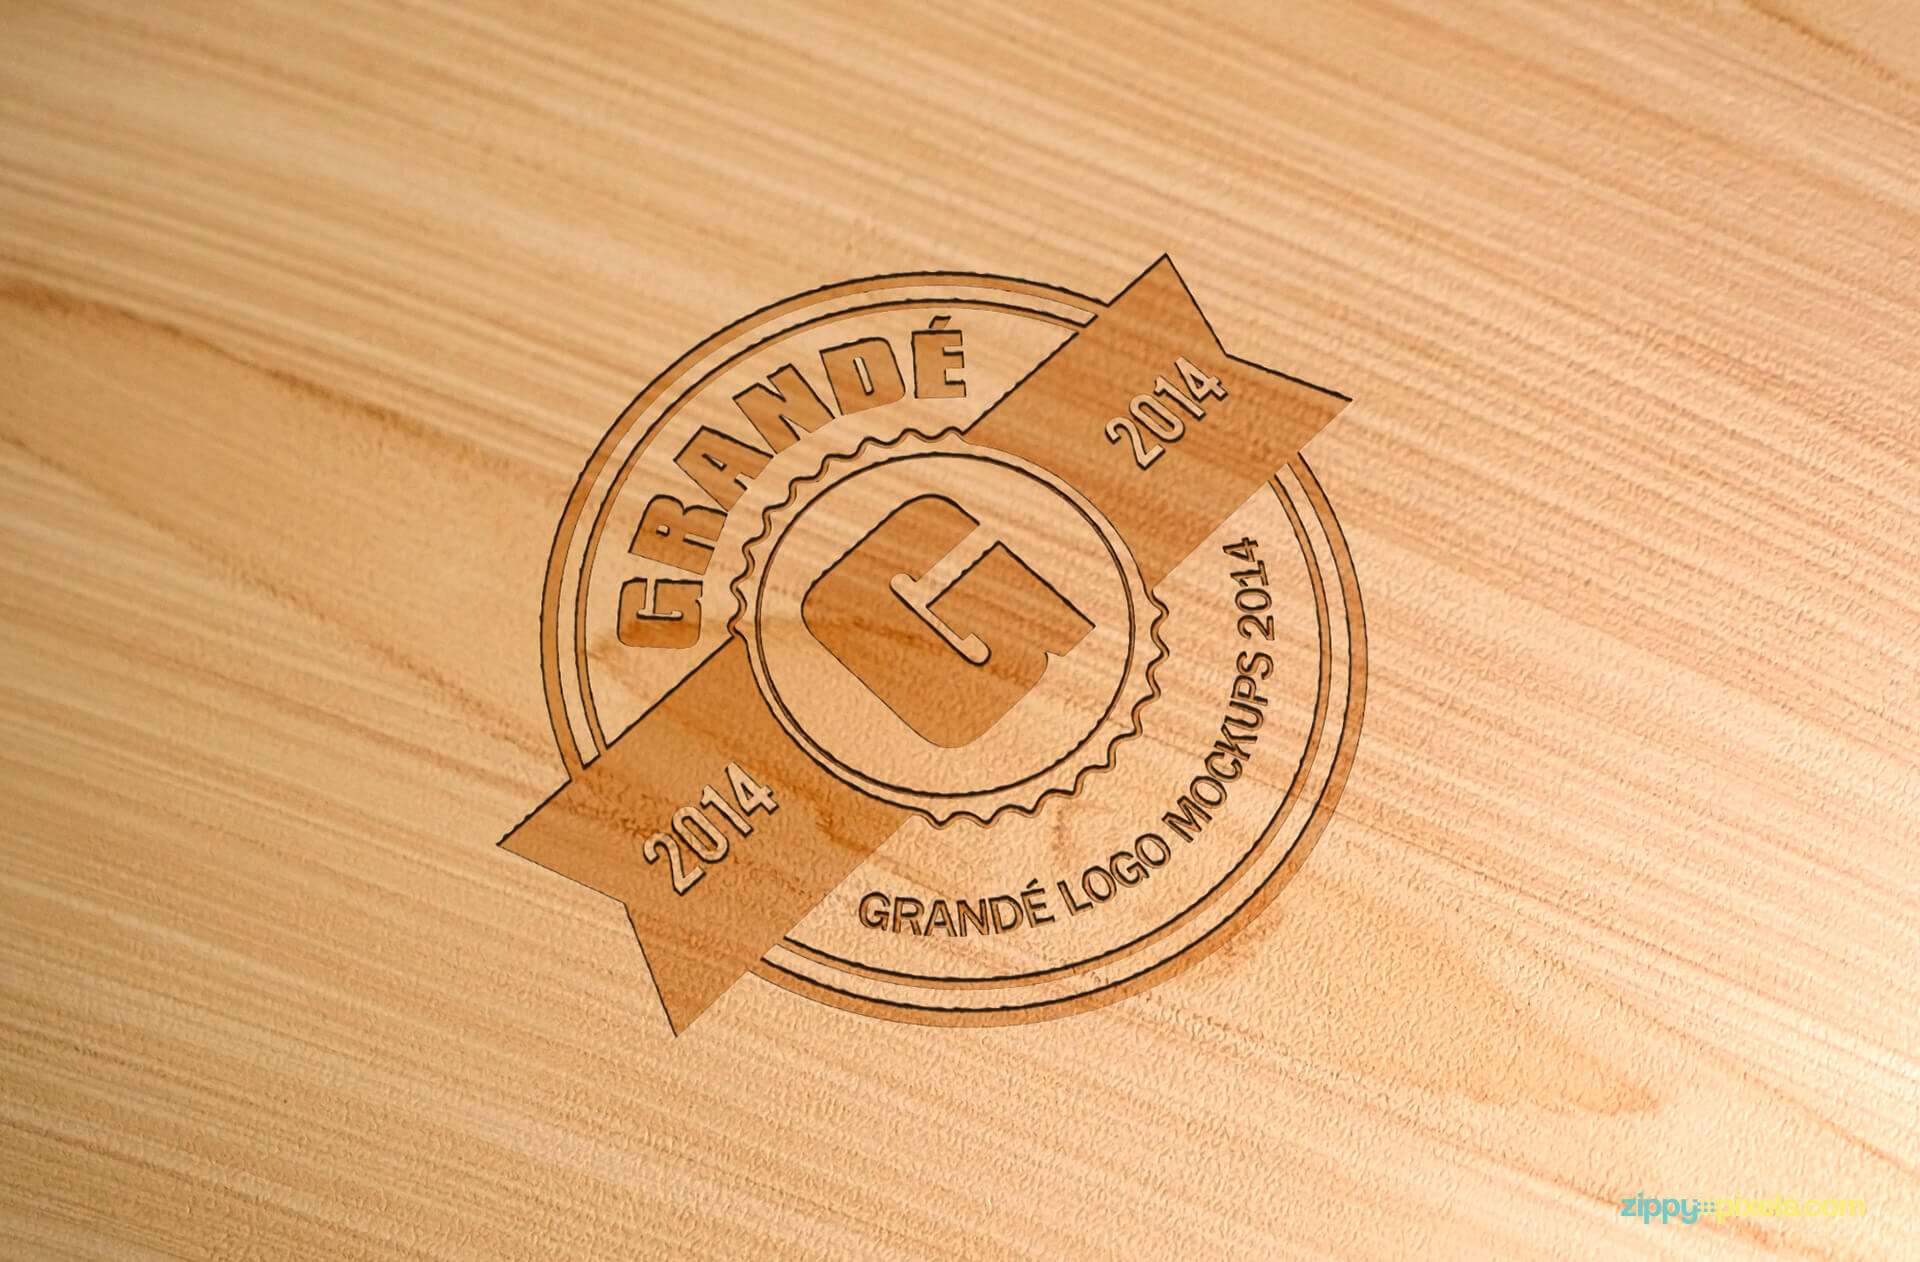 Logo Mockup of Debossed Logo on Beach Wood Surface